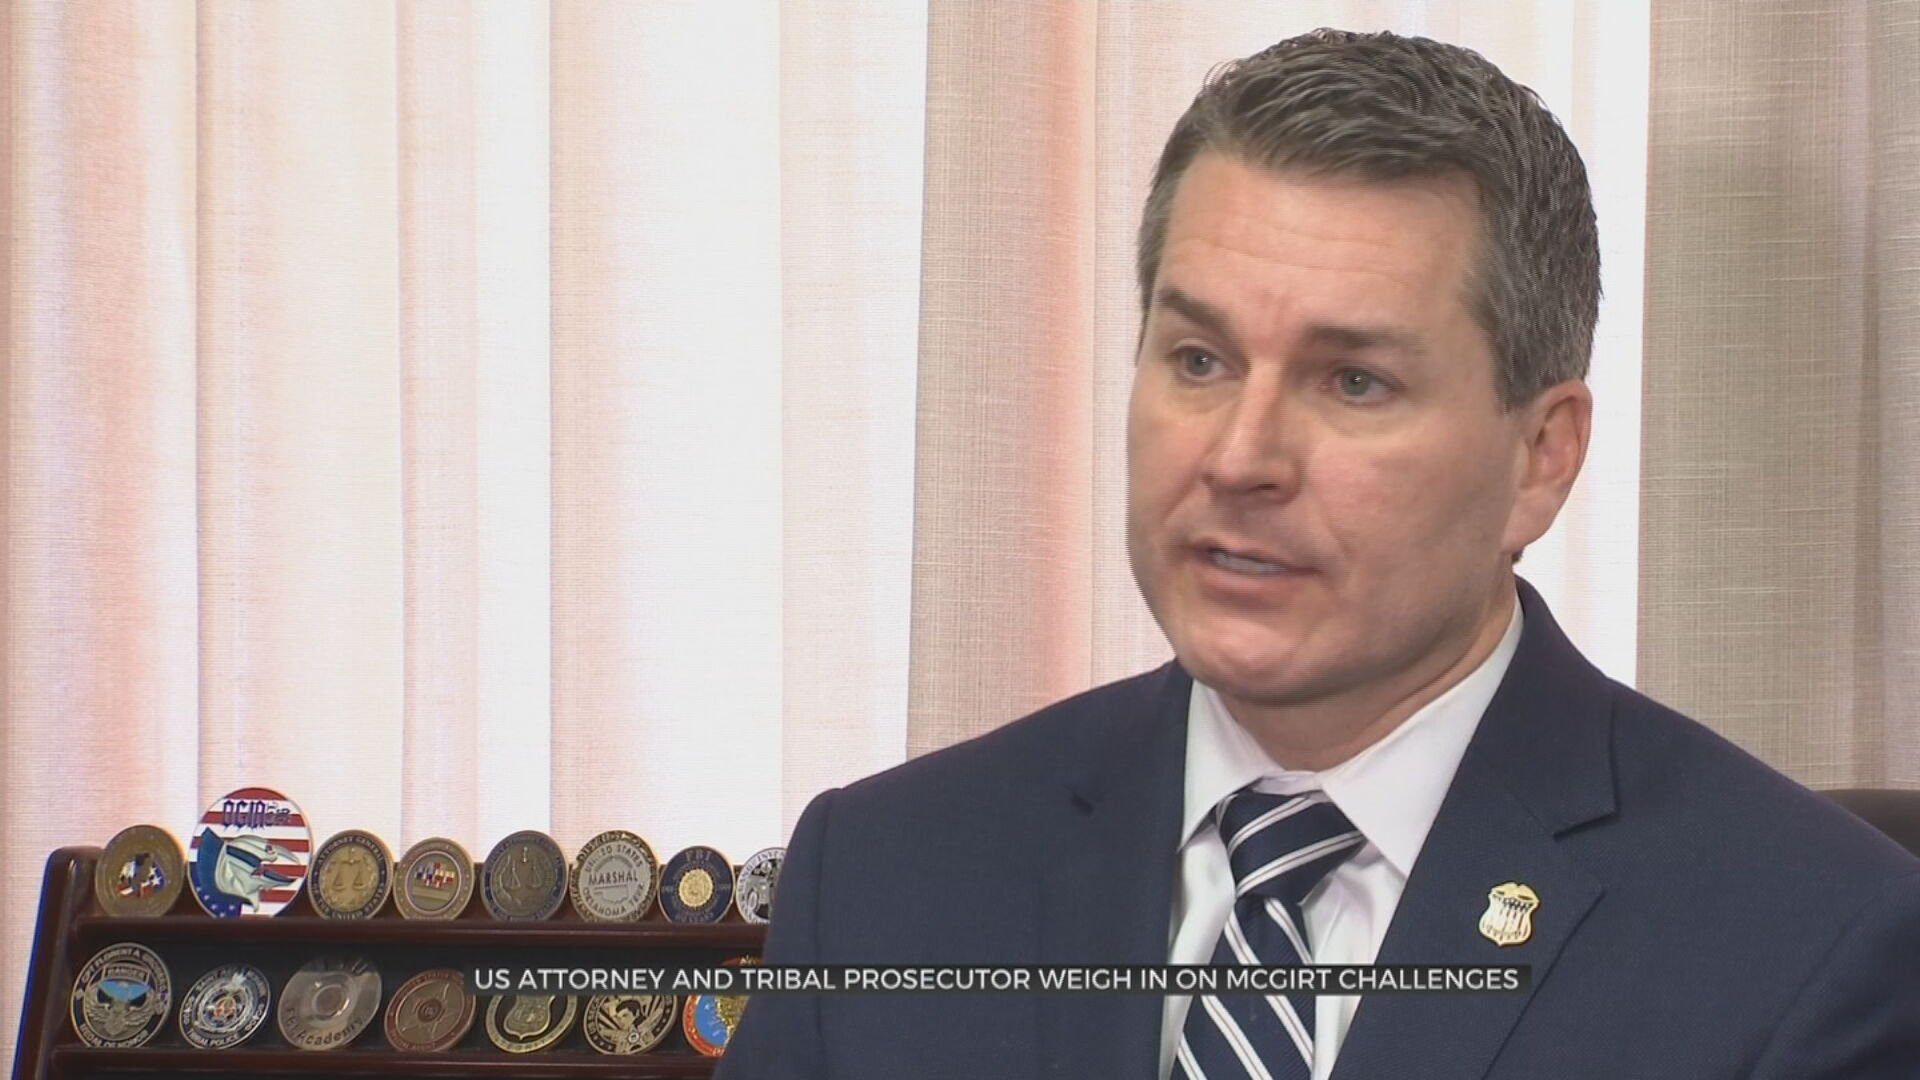 US Attorney, Tribal Prosecutor Weigh In On Challenges From Tribal Jurisdiction Ruling